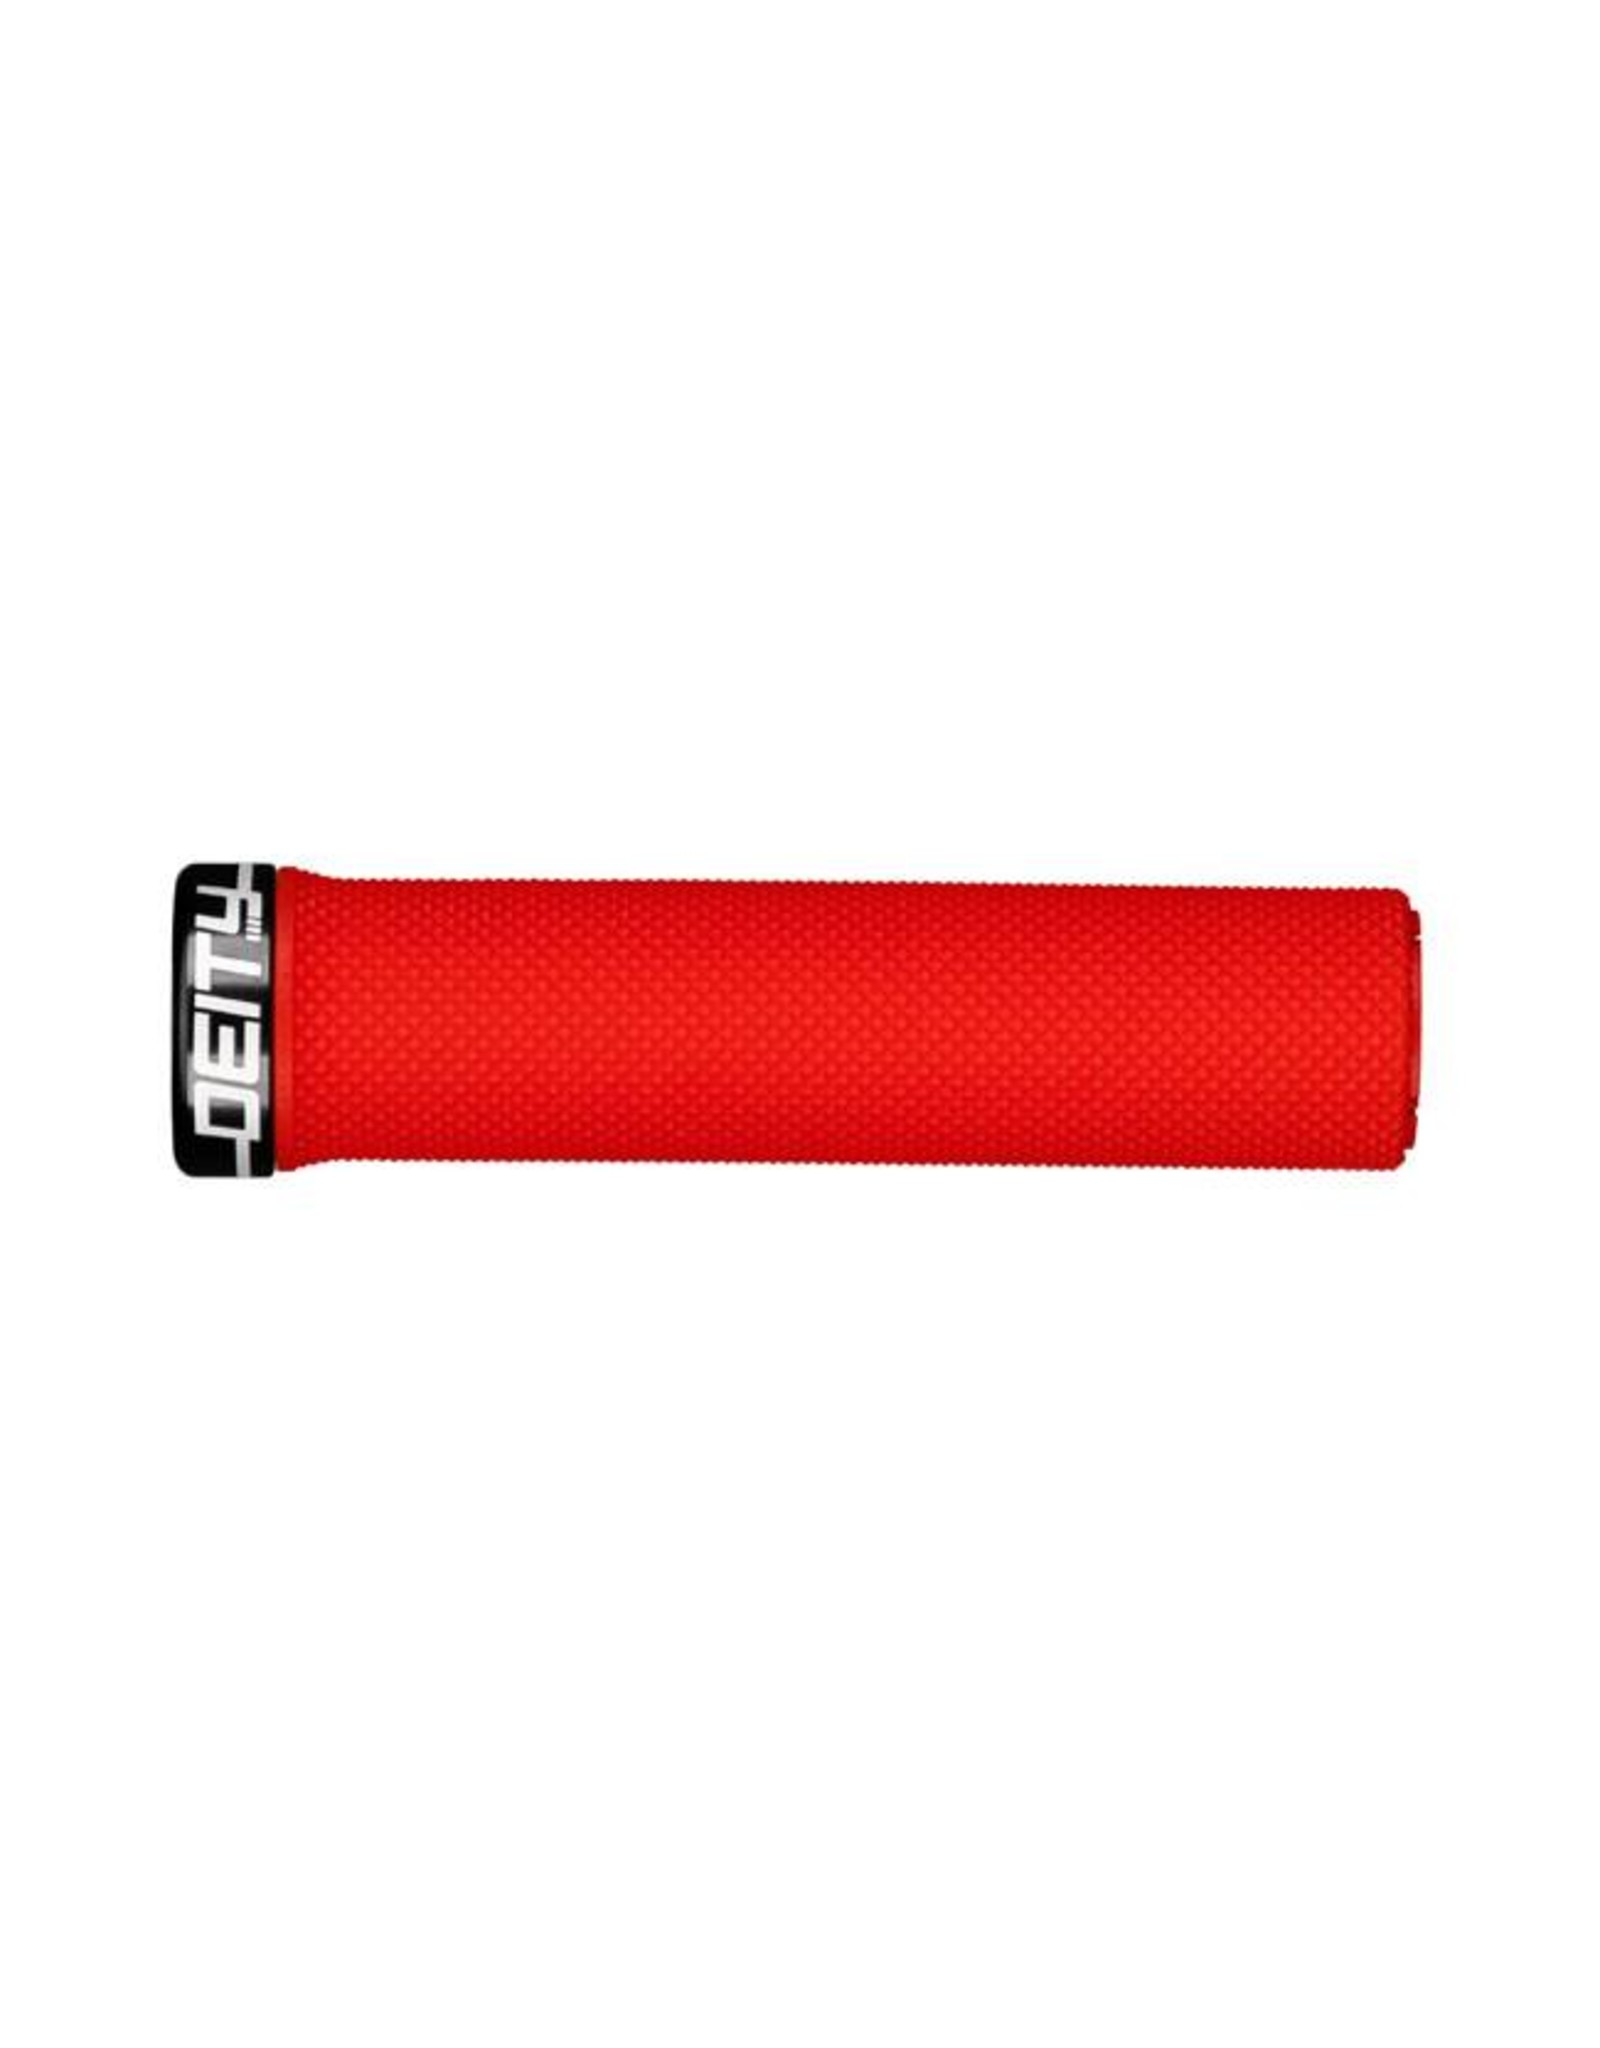 Deity Components Deity Waypoint Lock-on Grips: Red with Black Clamp